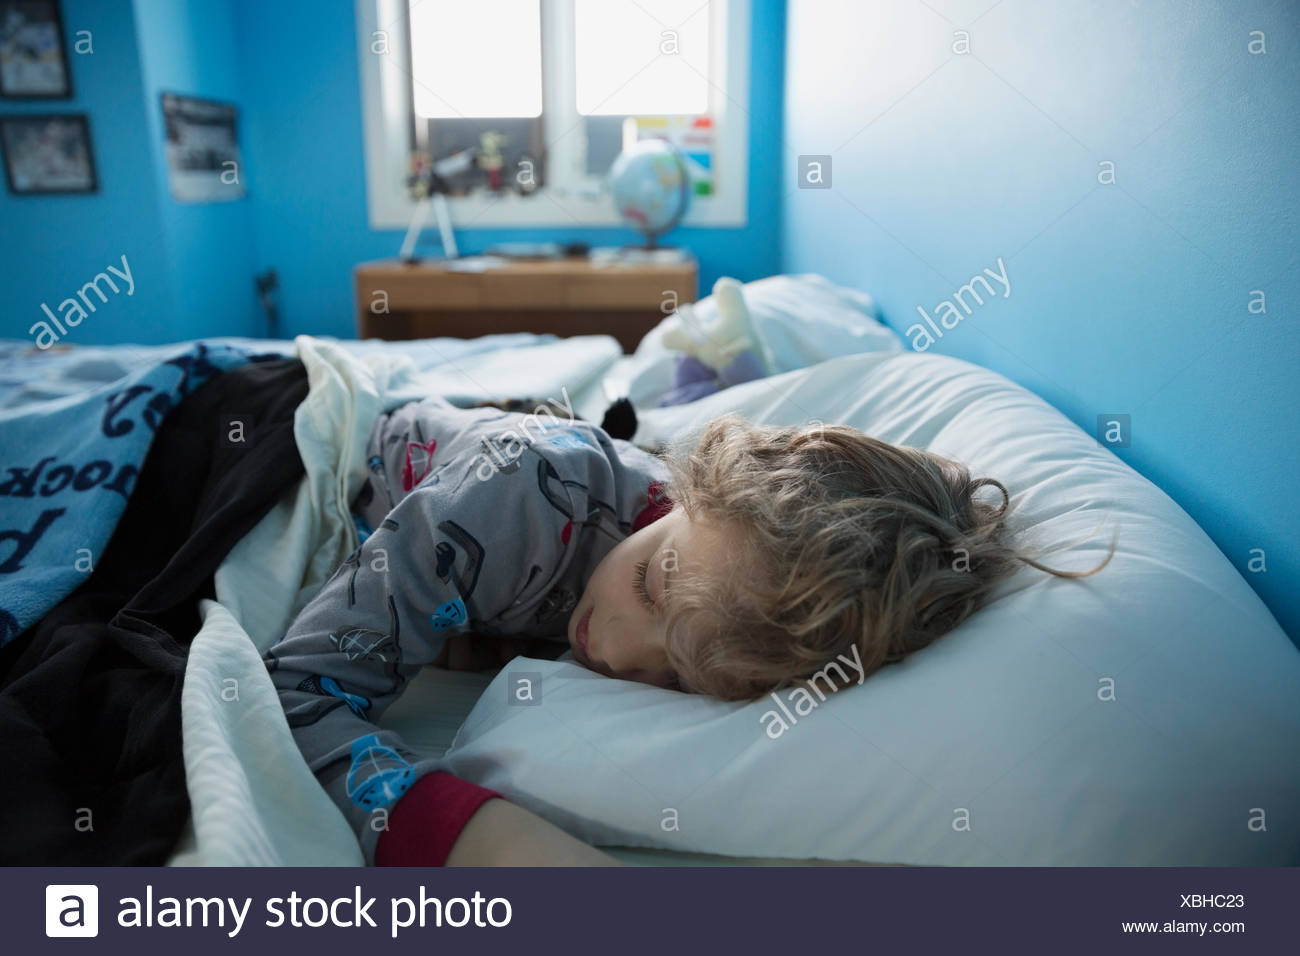 Boy sleeping in bed Photo Stock